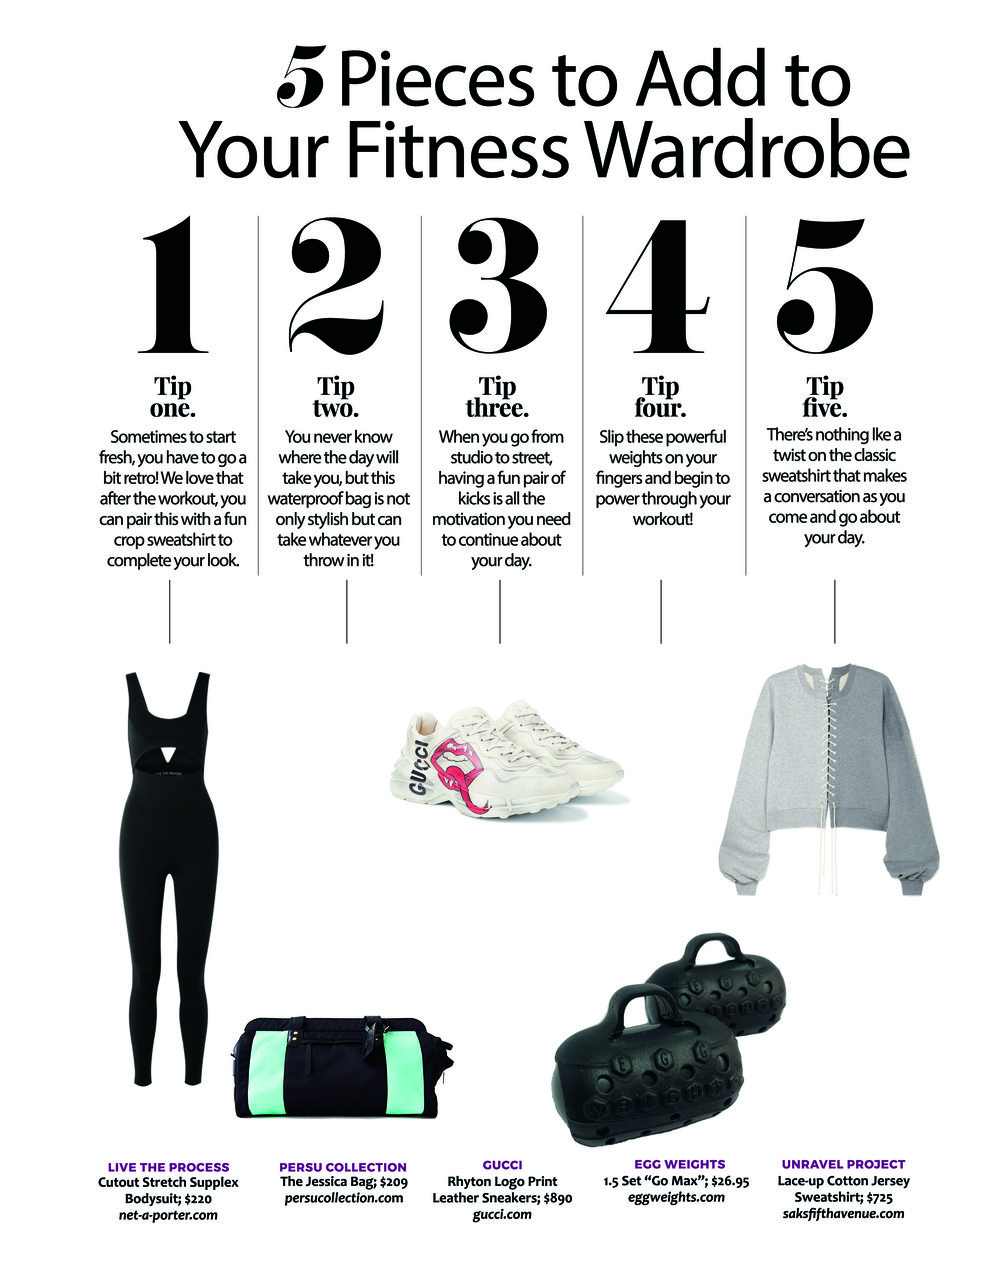 AM JAN 5 PIECES TO ADD TO YOUR FITNESS WARDROBE.jpg